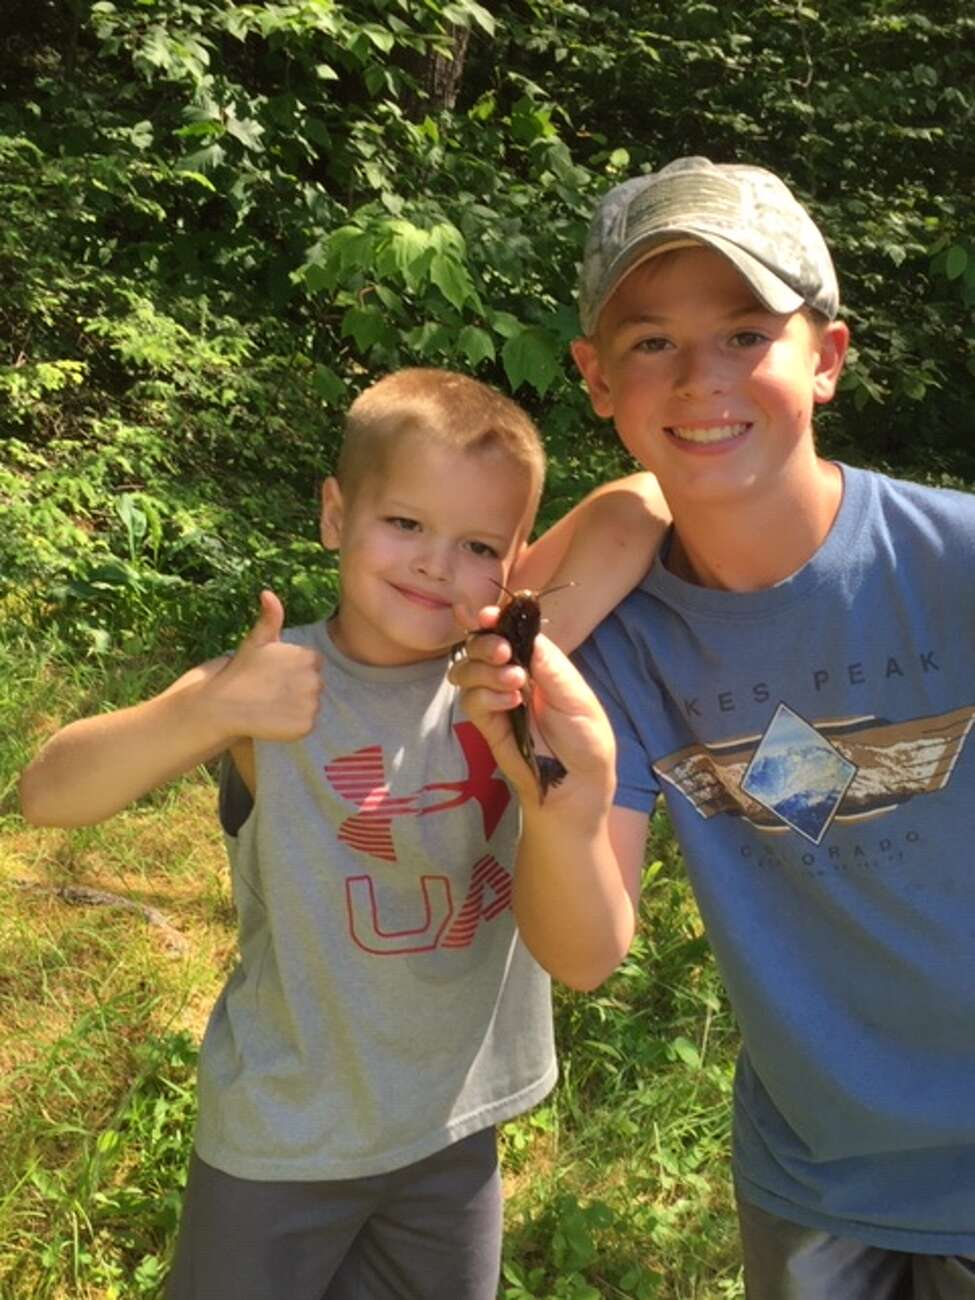 Nicholas Borden, 7, and Owen Wallen, 12, of Wynantskill with their catch of the day at Cherry Plain State Park.